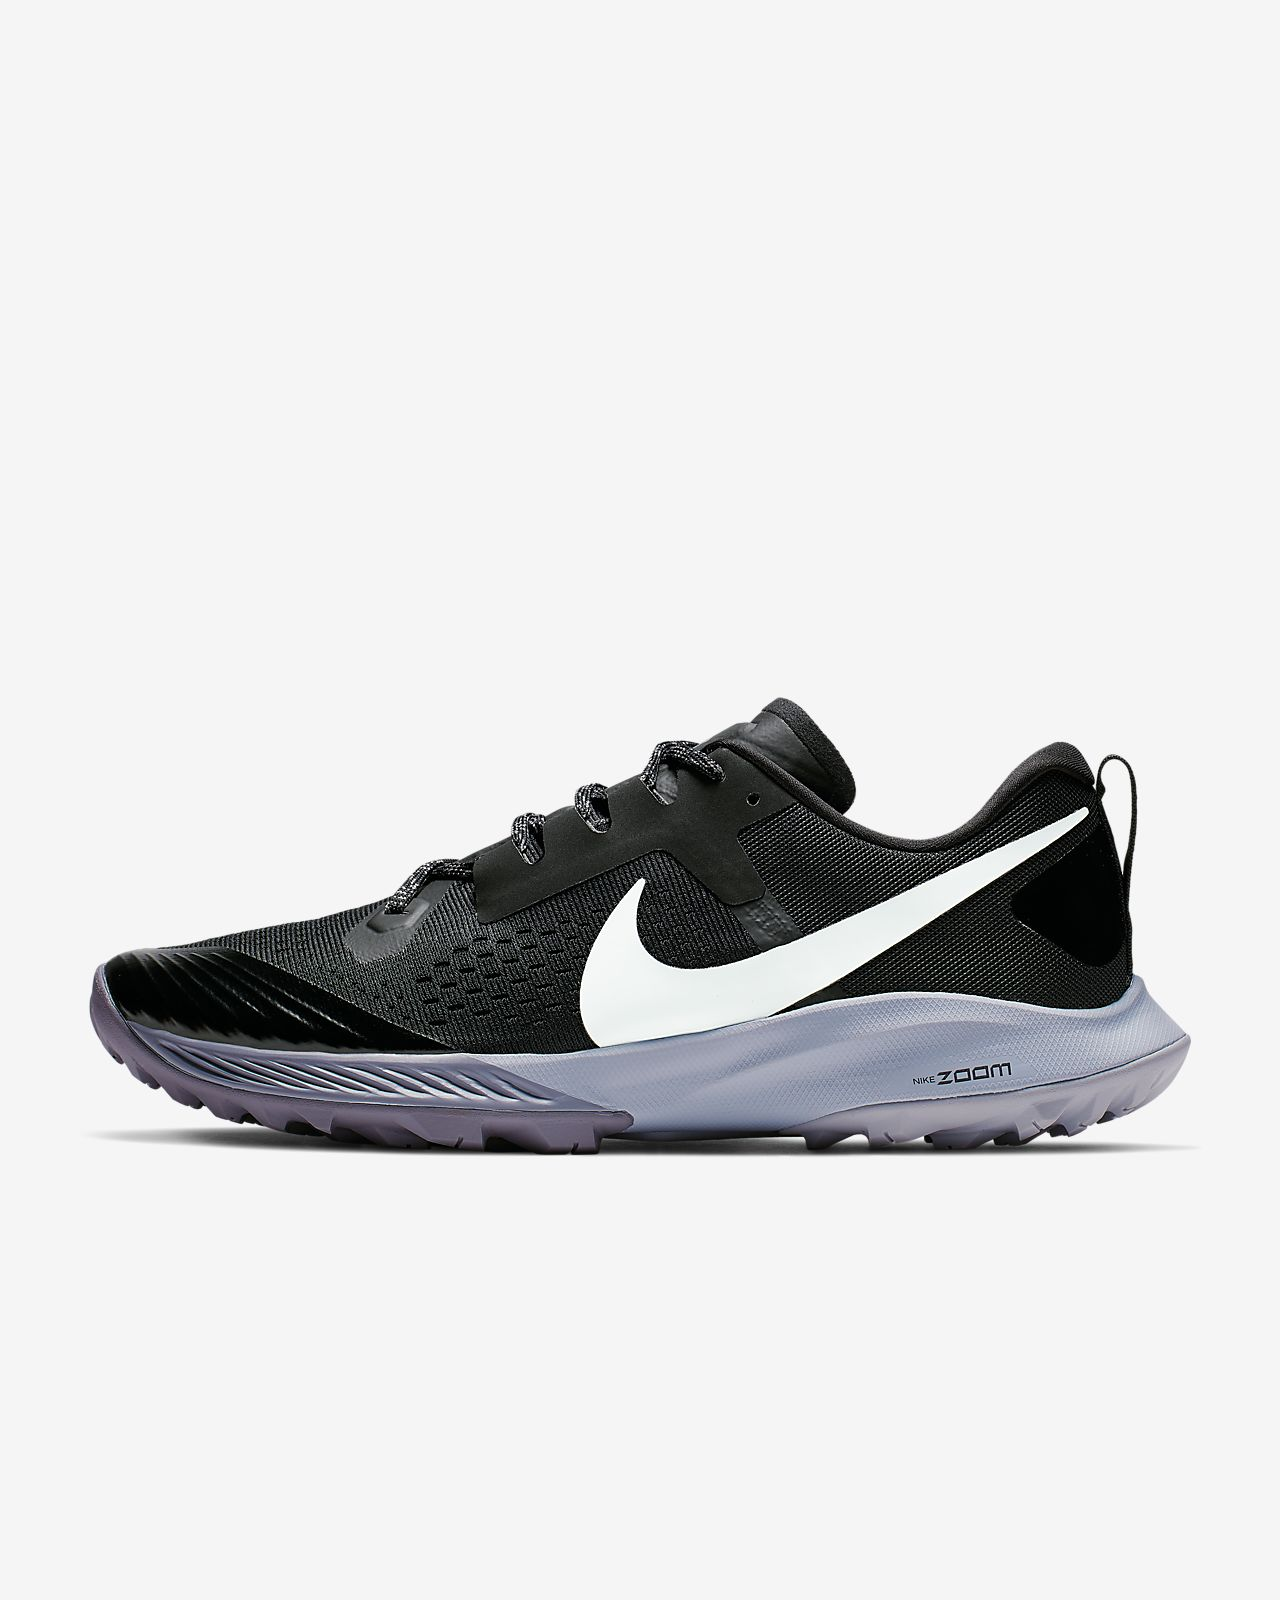 8faac87e7e4 Nike Air Zoom Terra Kiger 5 Men s Running Shoe. Nike.com DK